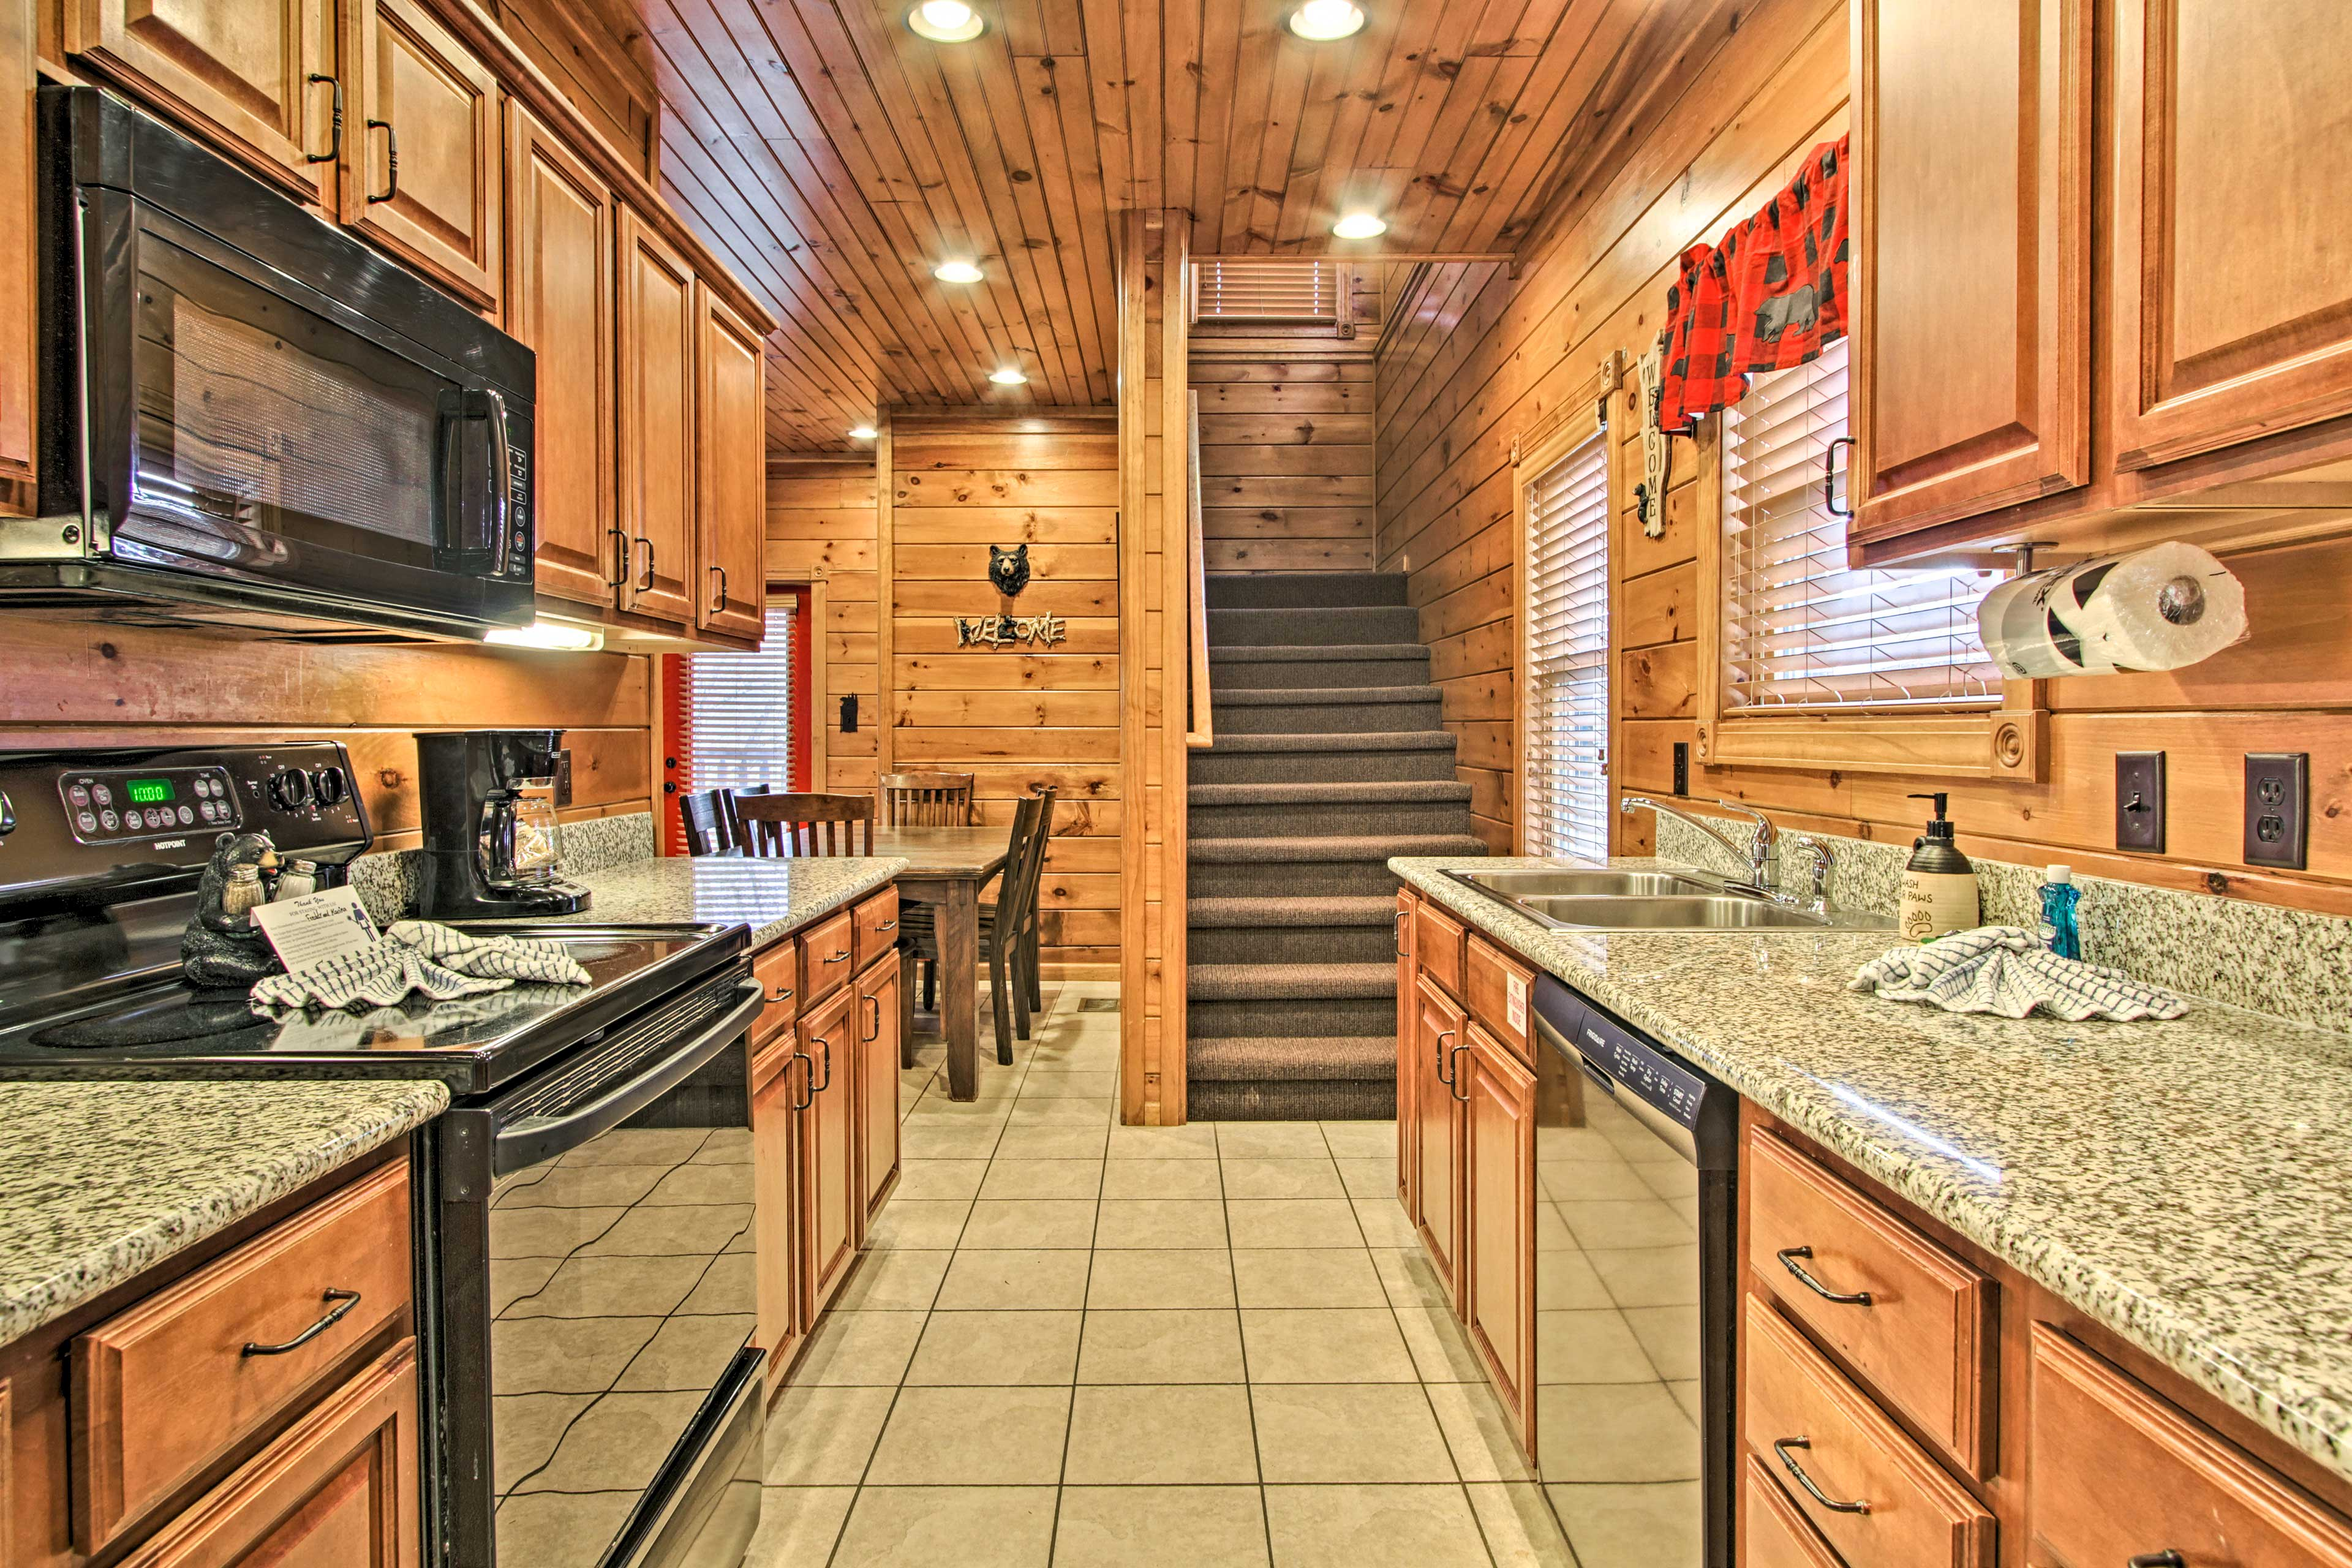 The galley-style kitchen features modern appliances.